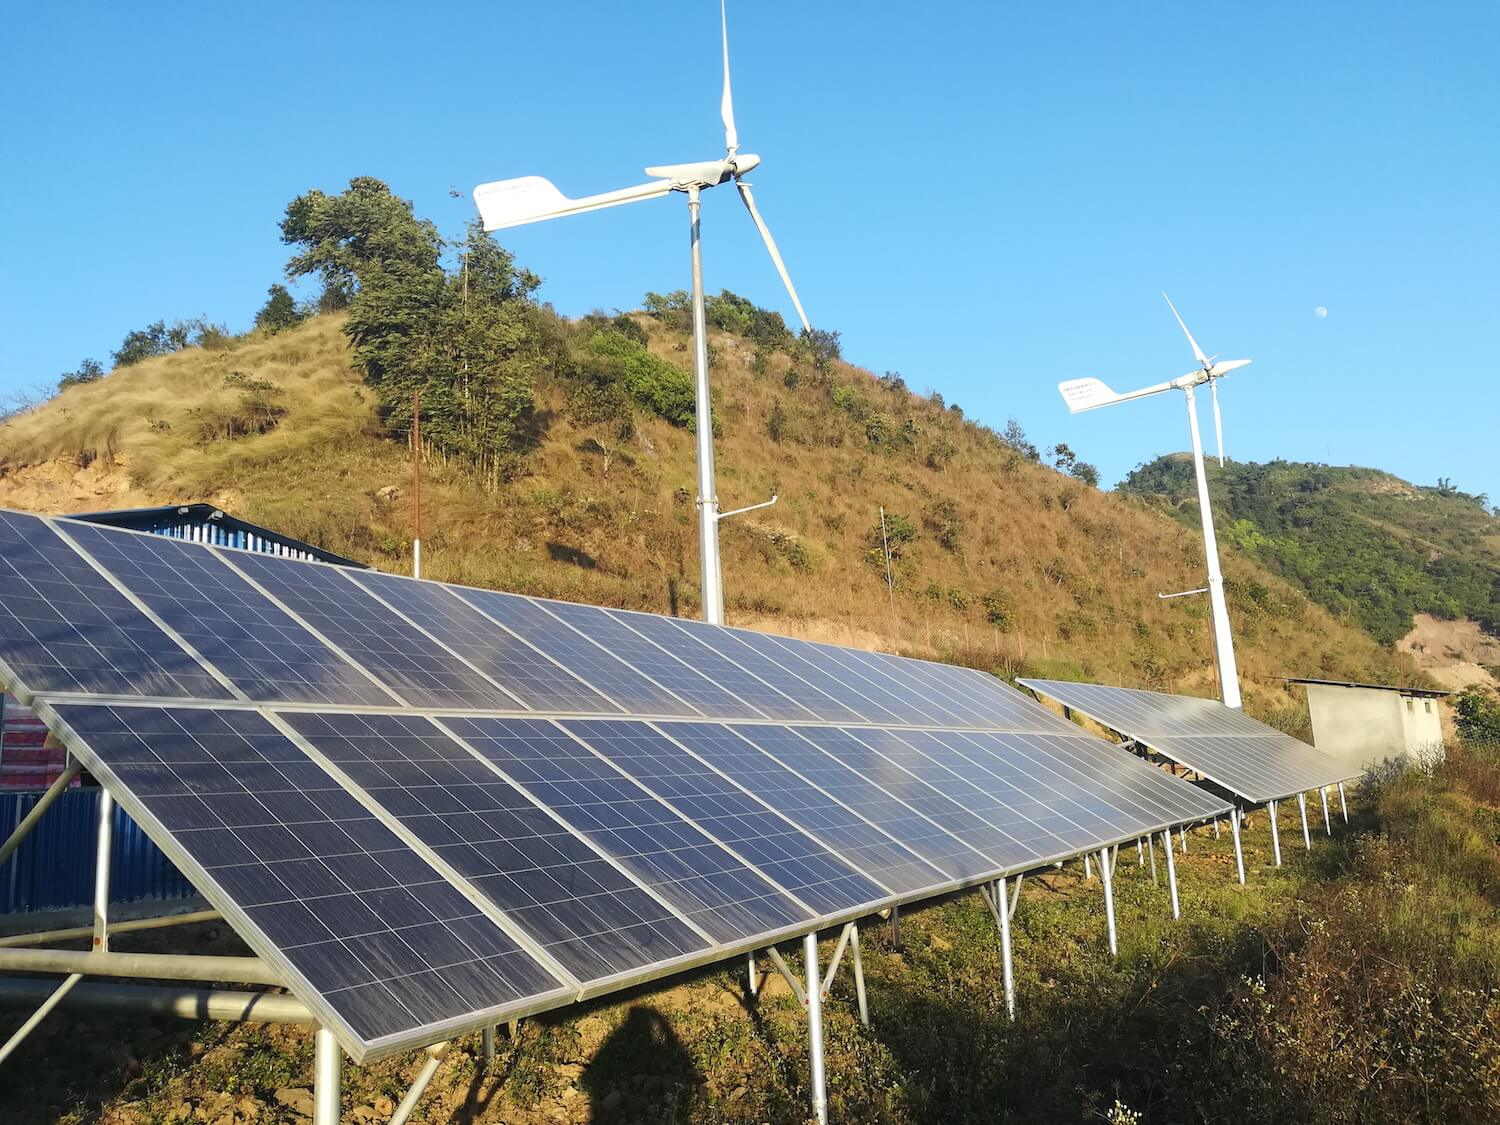 Nepal can lead in zero-carbon